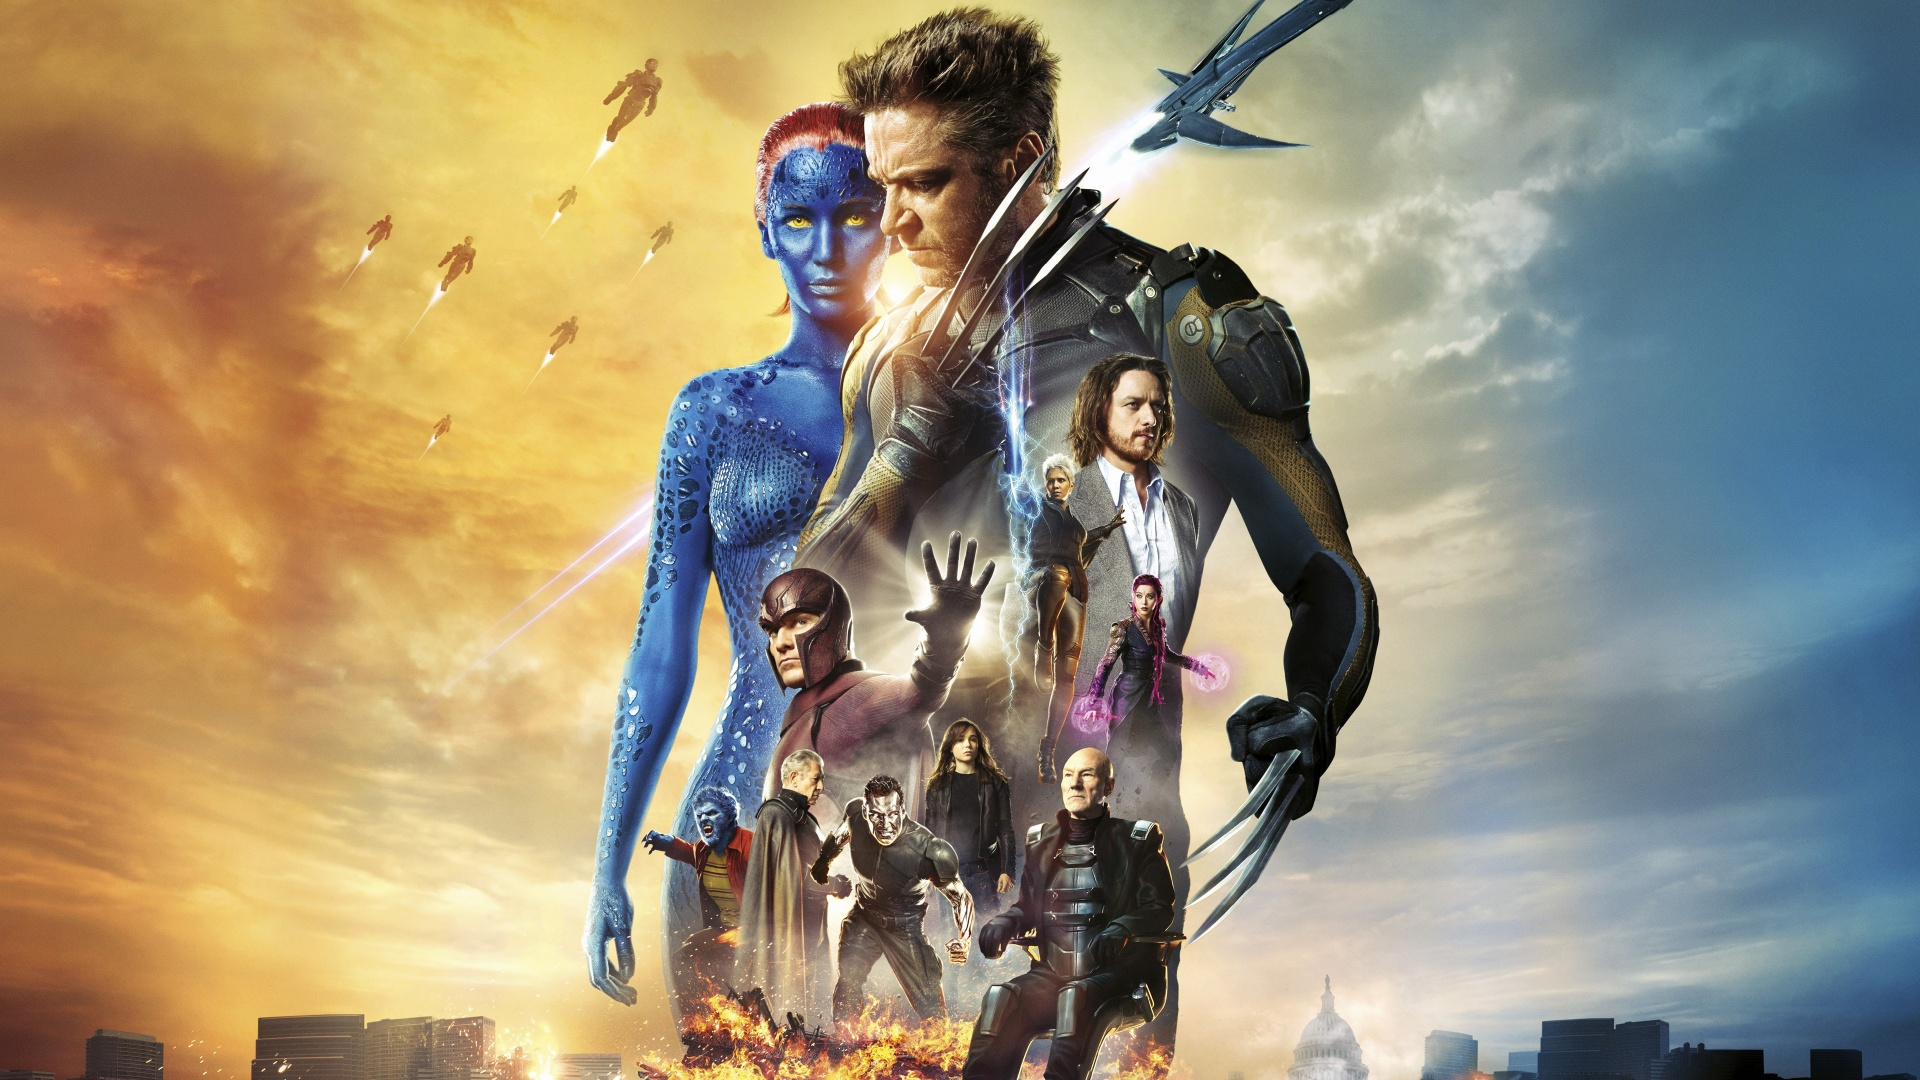 Top Wallpaper Movie Action - xmen-days-of-future-past-marvel-live-action-movies-37161370-1920-1080  Image_951126.jpg